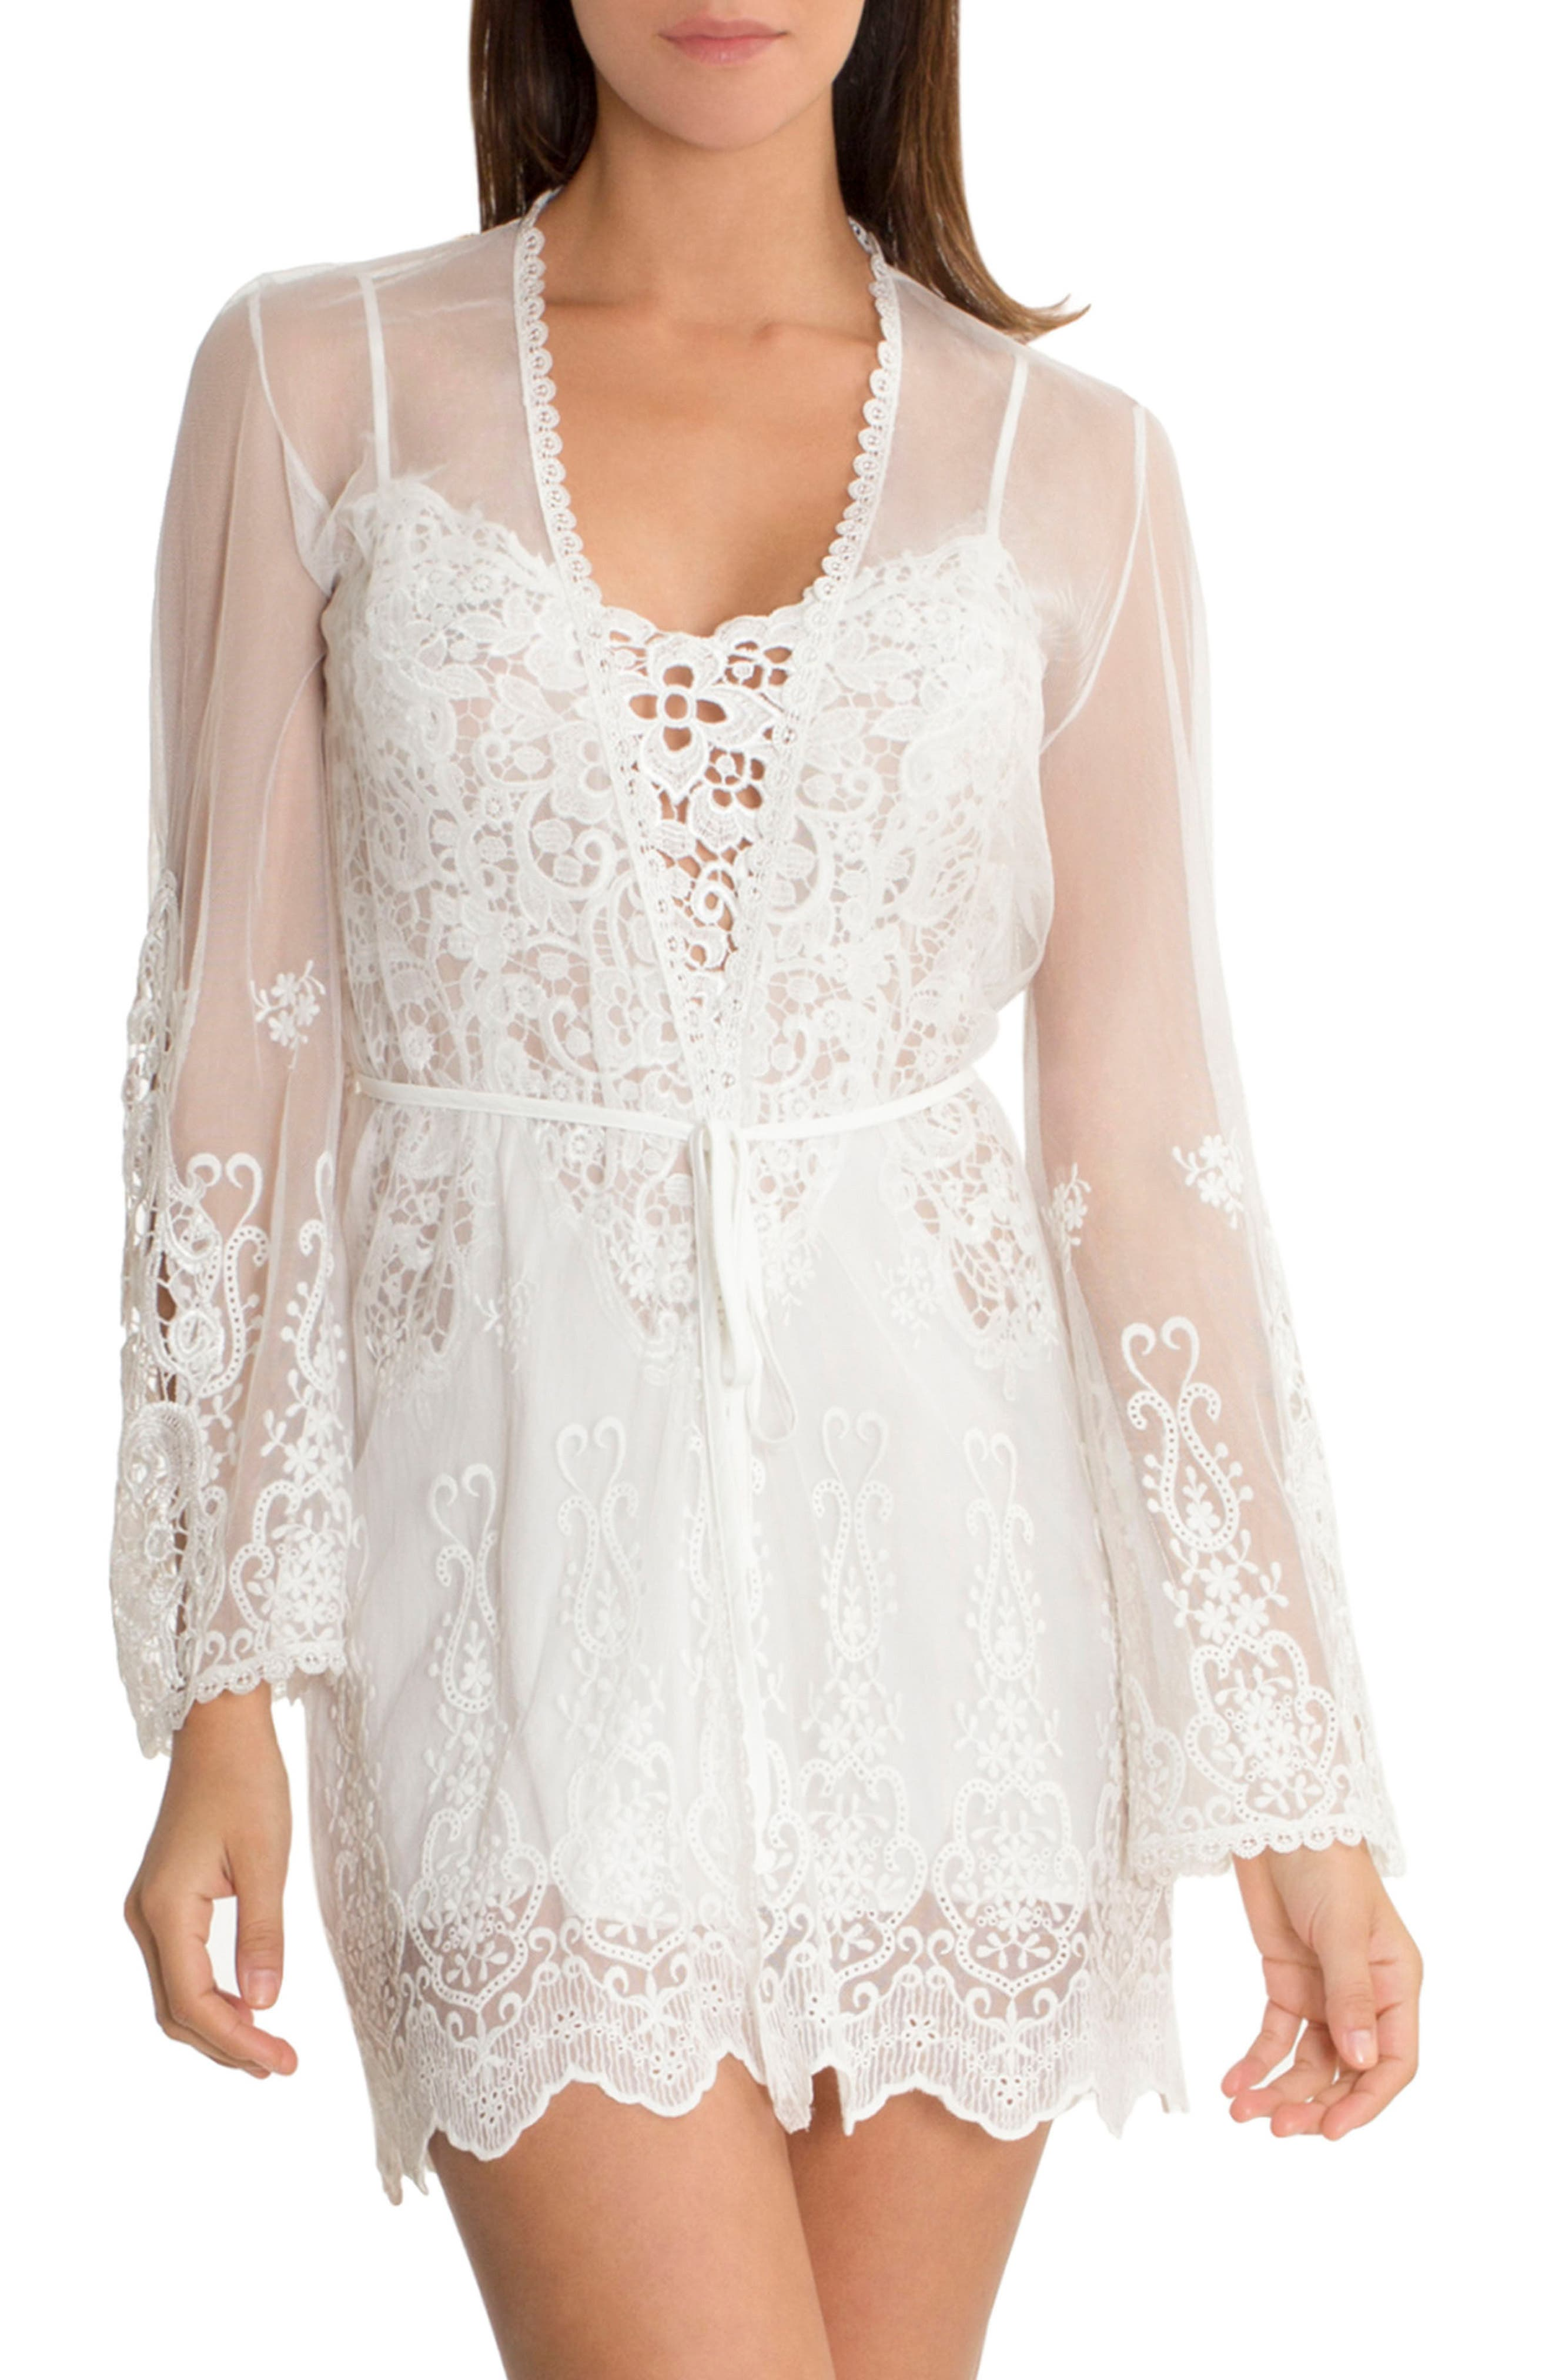 IN BLOOM BY JONQUIL Embroidered Mesh Wrap, Main, color, IVORY